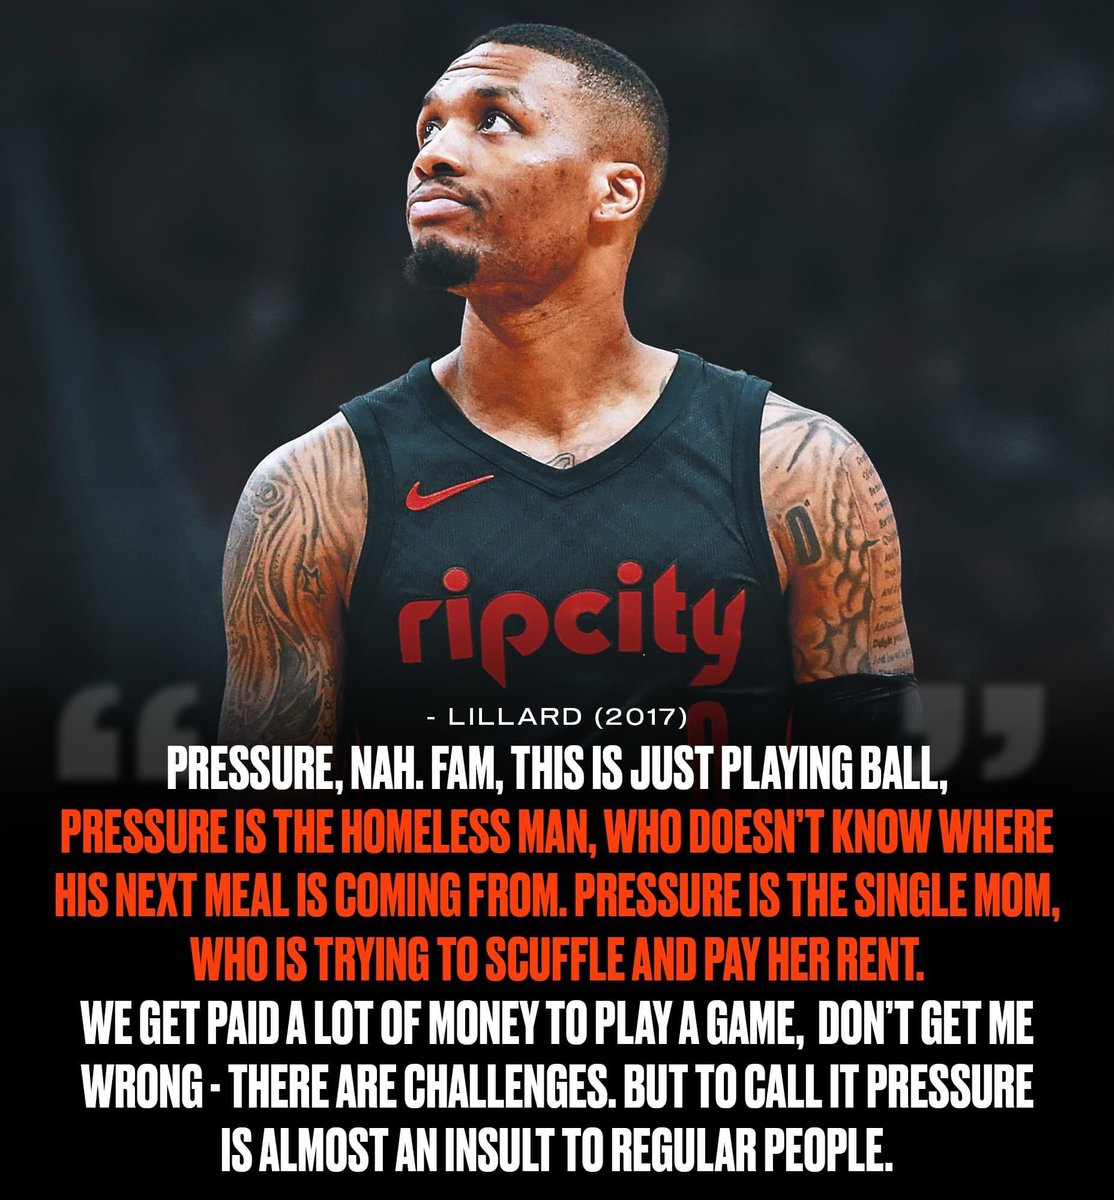 Damian Lillard's quote about pressure will always be amazing 🙏  (via Sporting News) https://t.co/jLH5mwsgBy